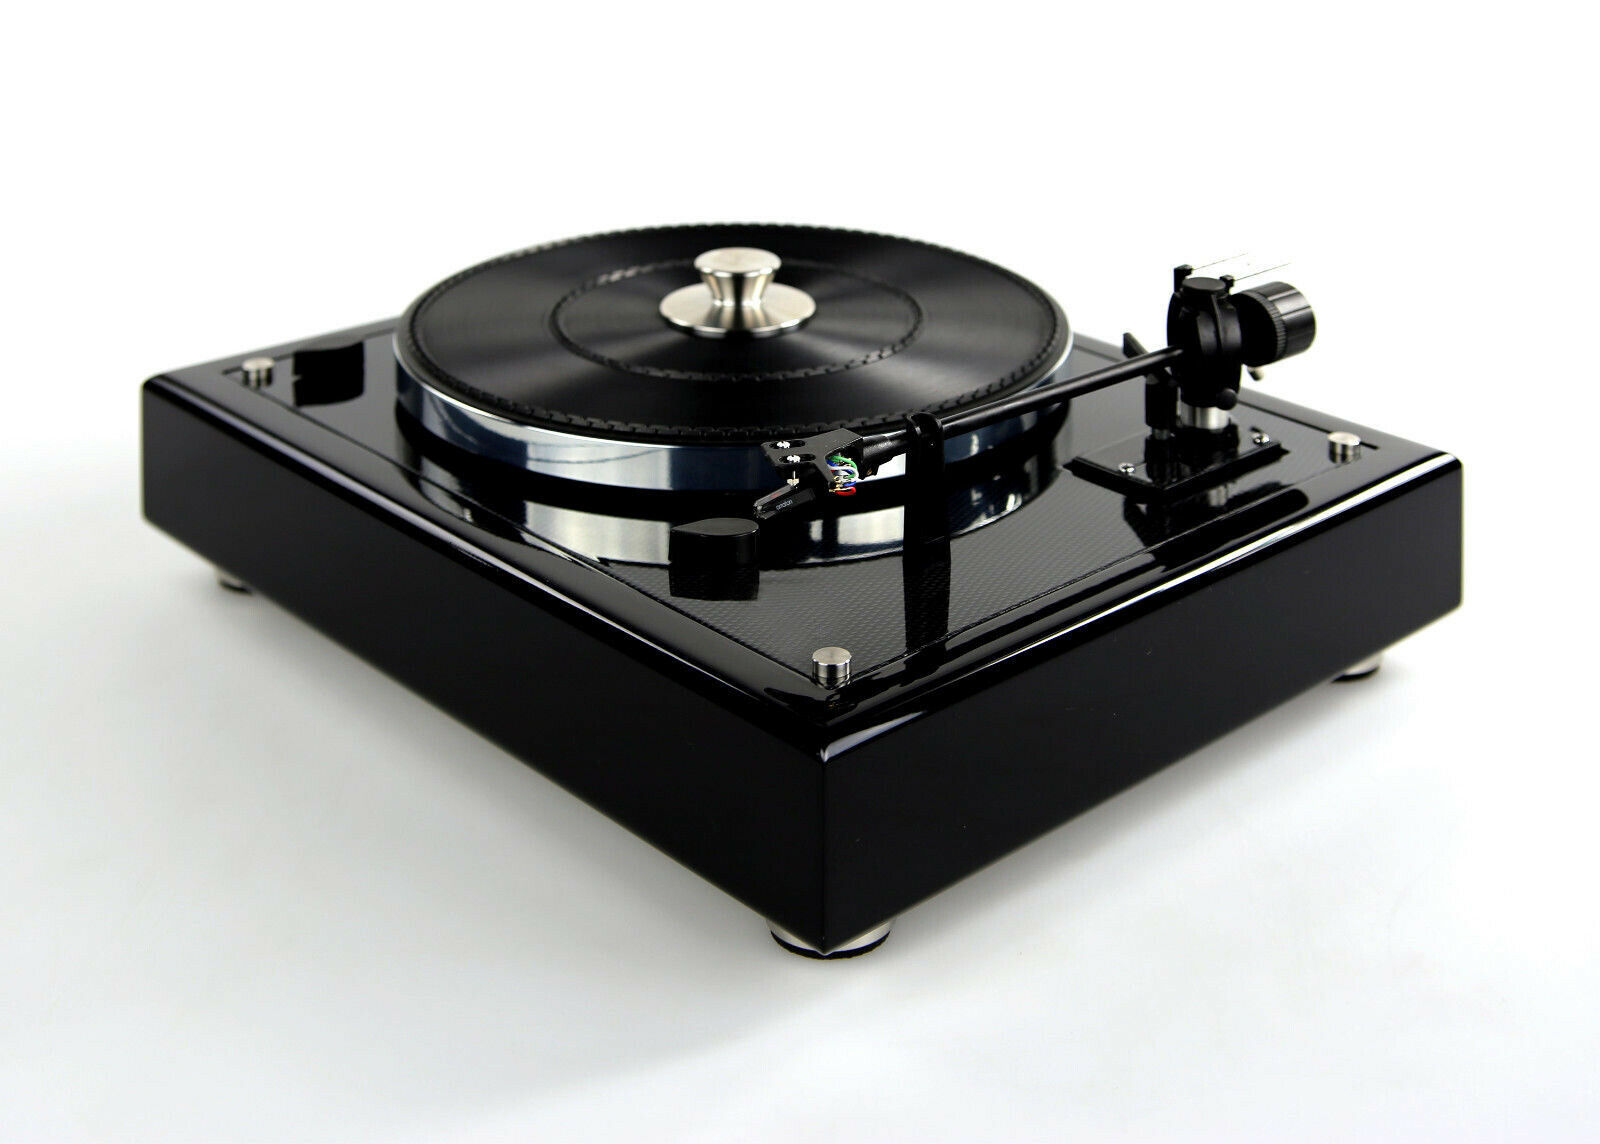 Image 1 - Restored & Modified Thorens TD 166 MKII Turntable Carbon Look